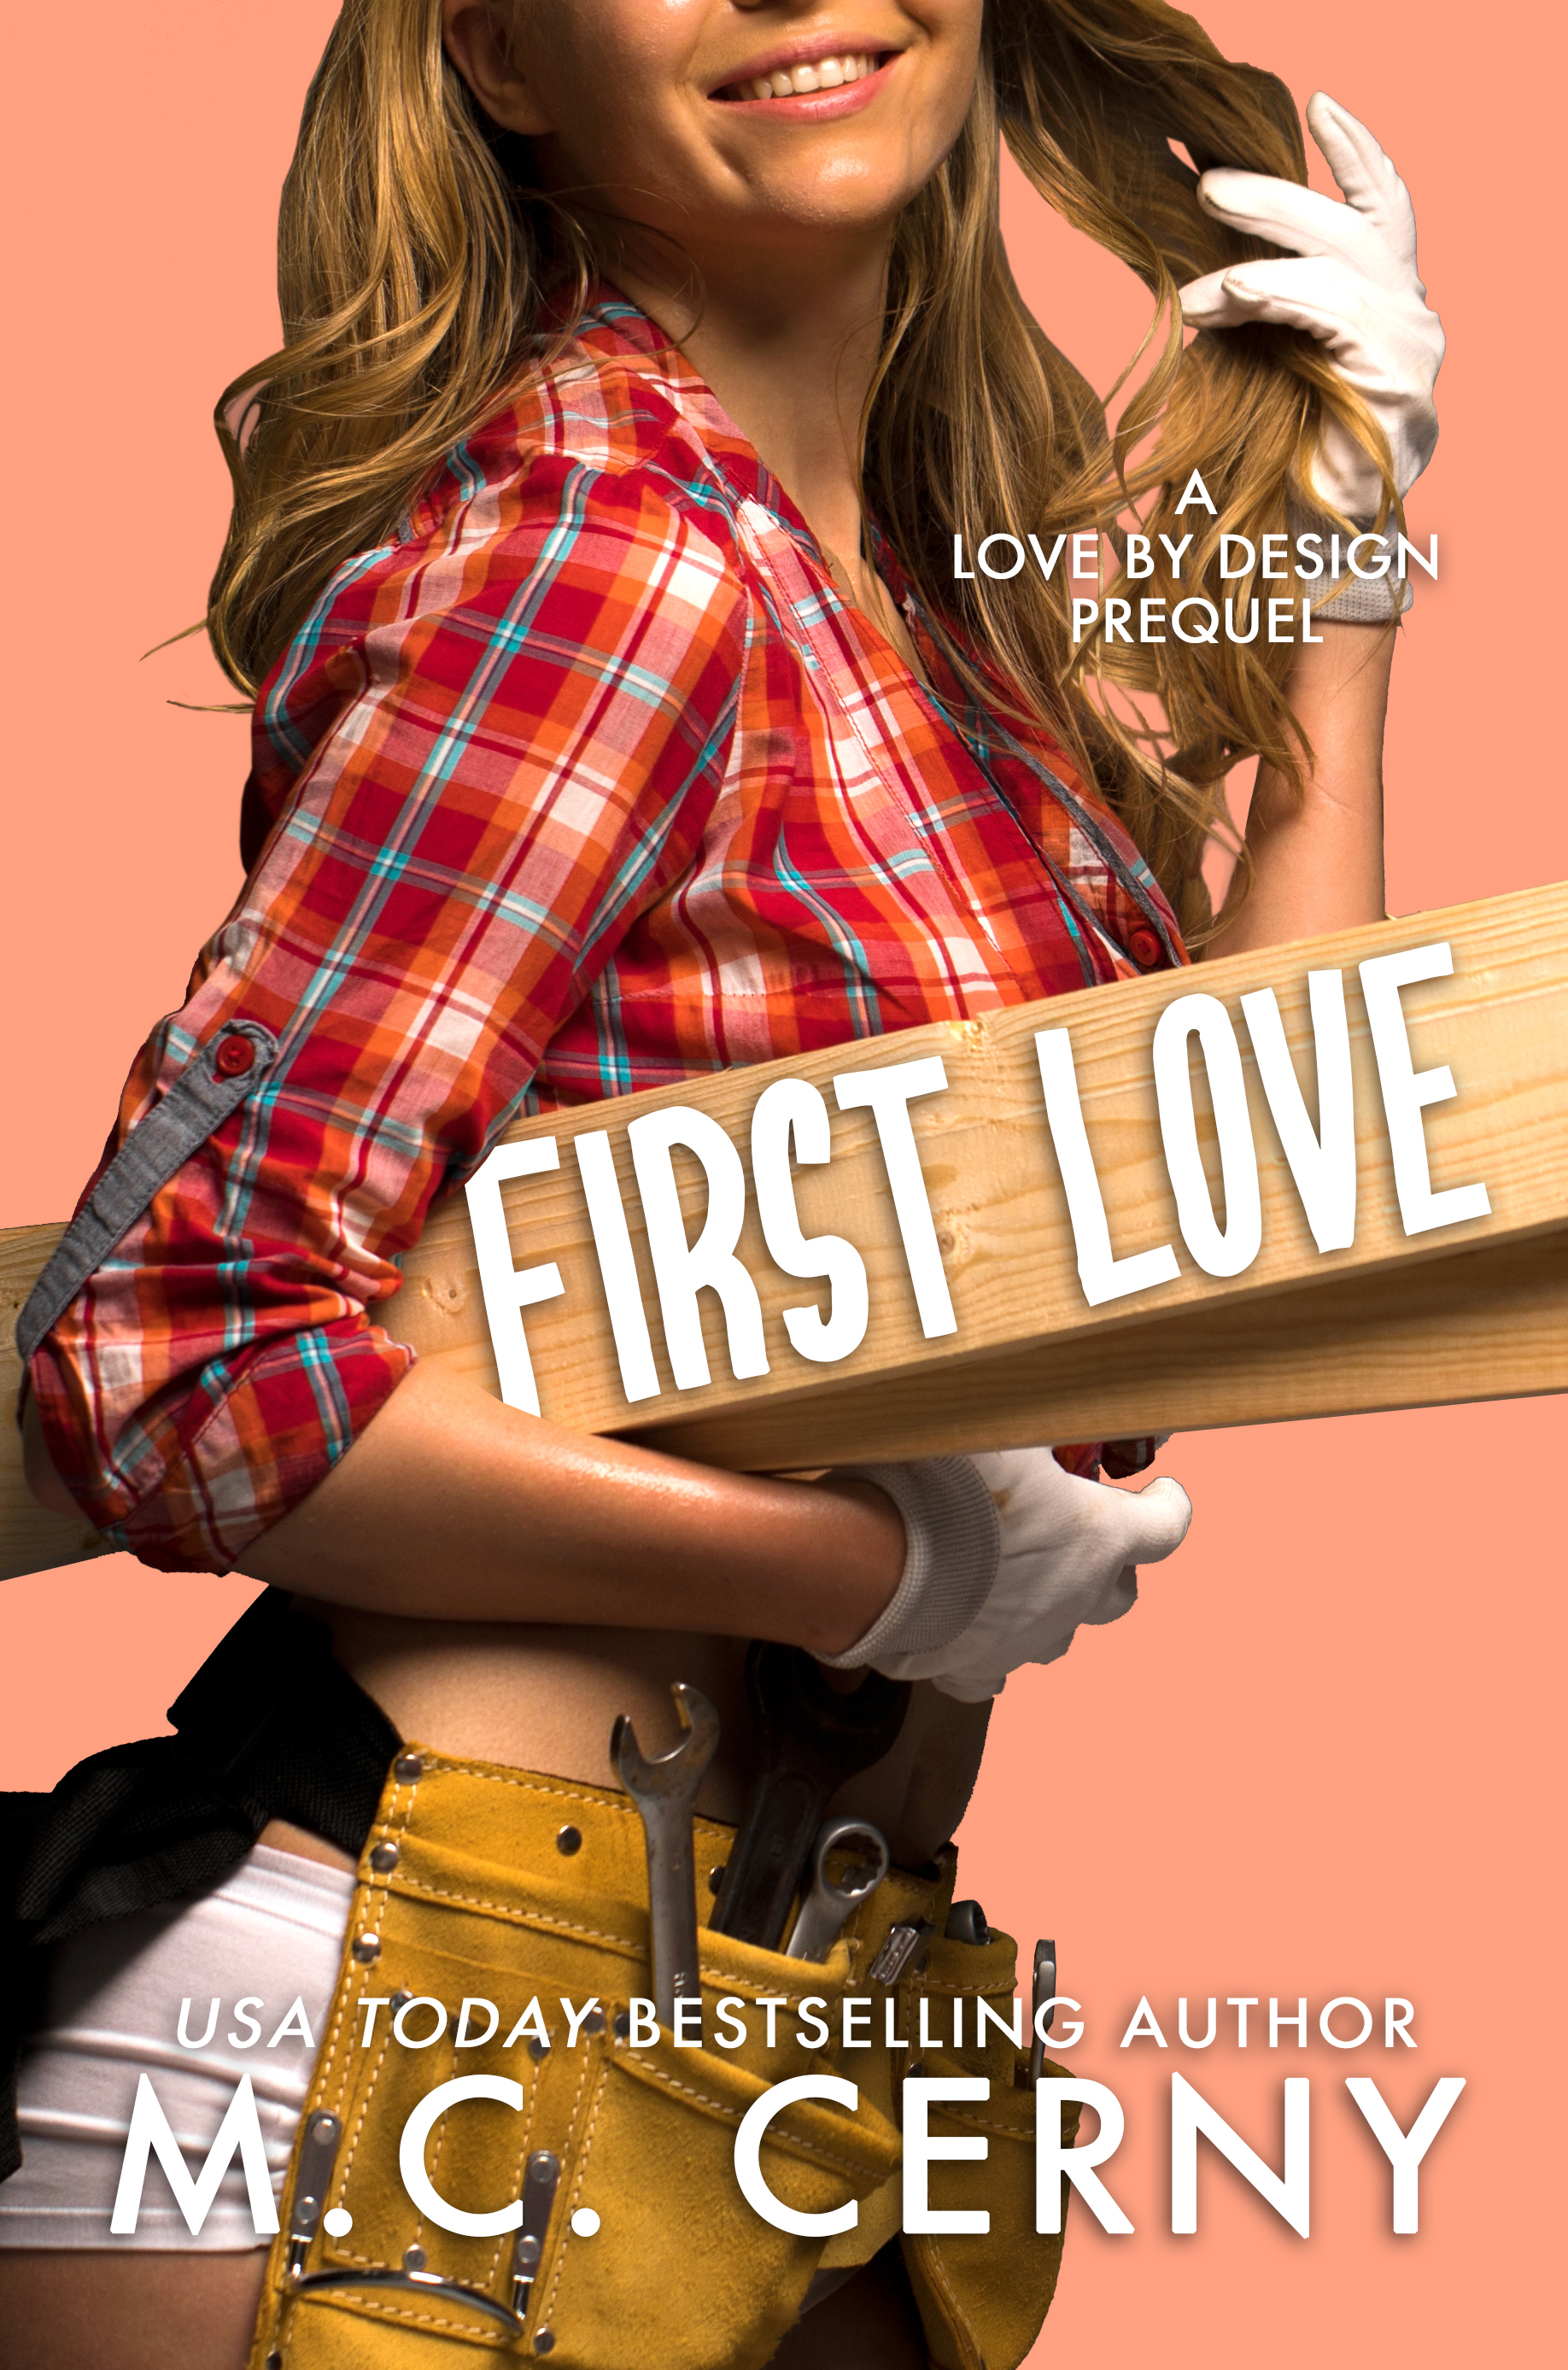 First Love: A Love by Design prequel